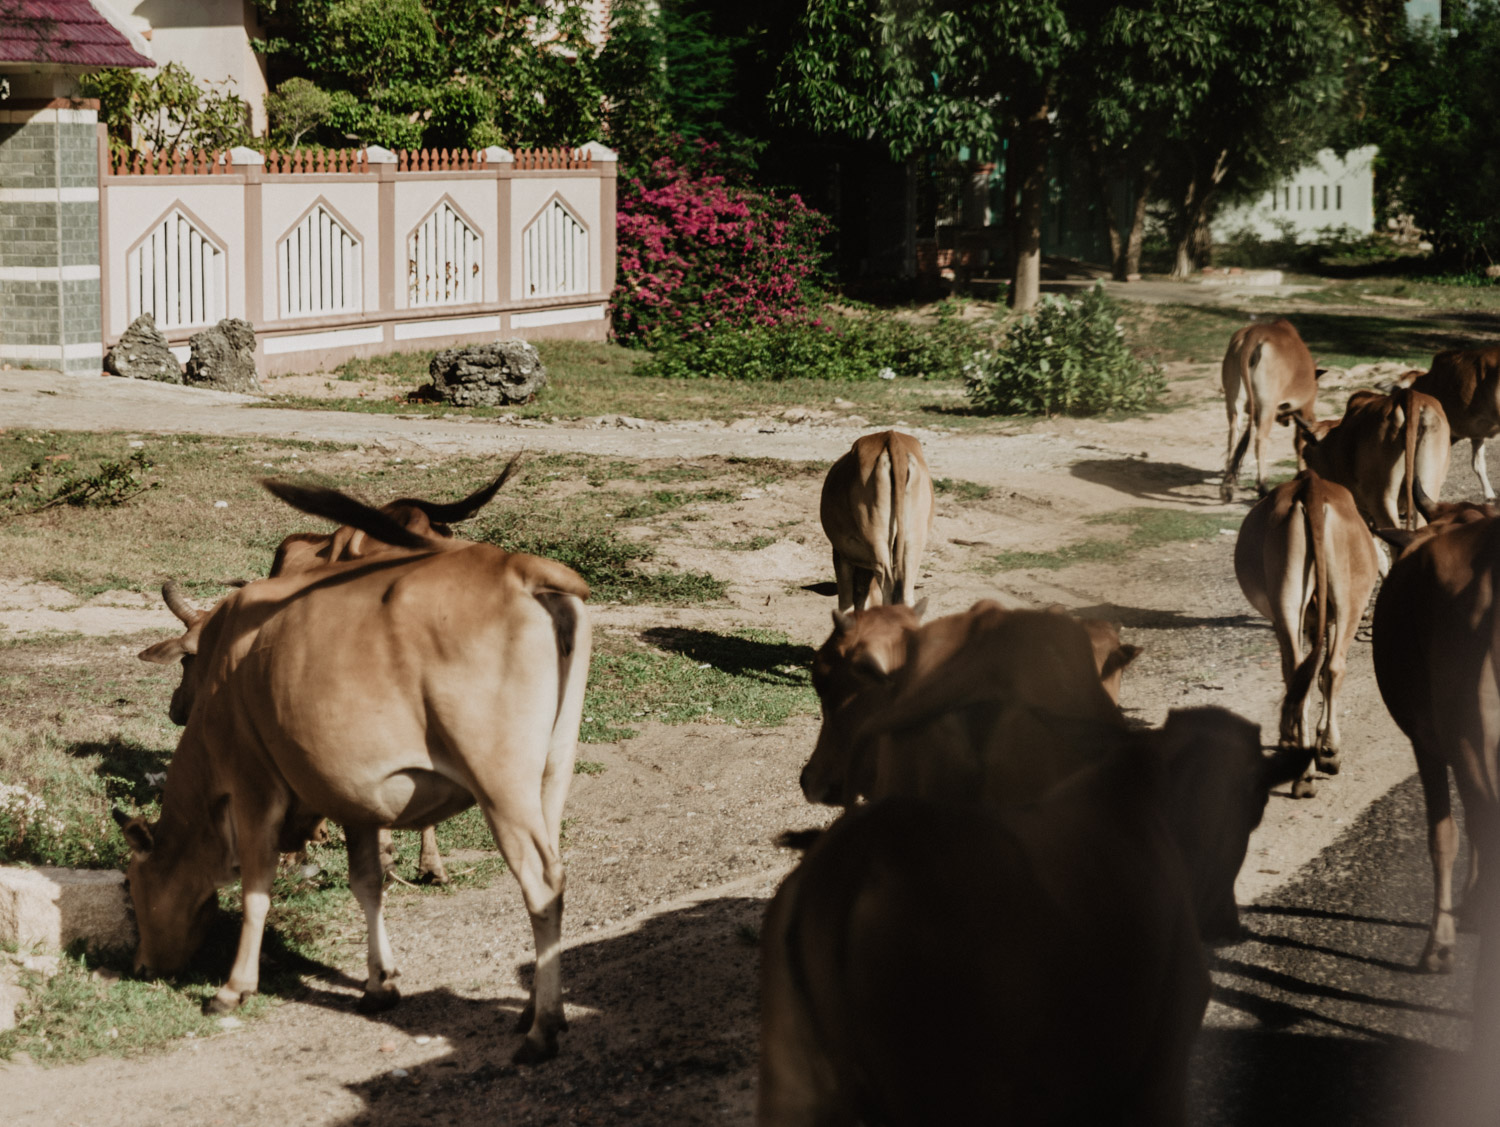 Cows on the road in Phu Yen, Vietnam